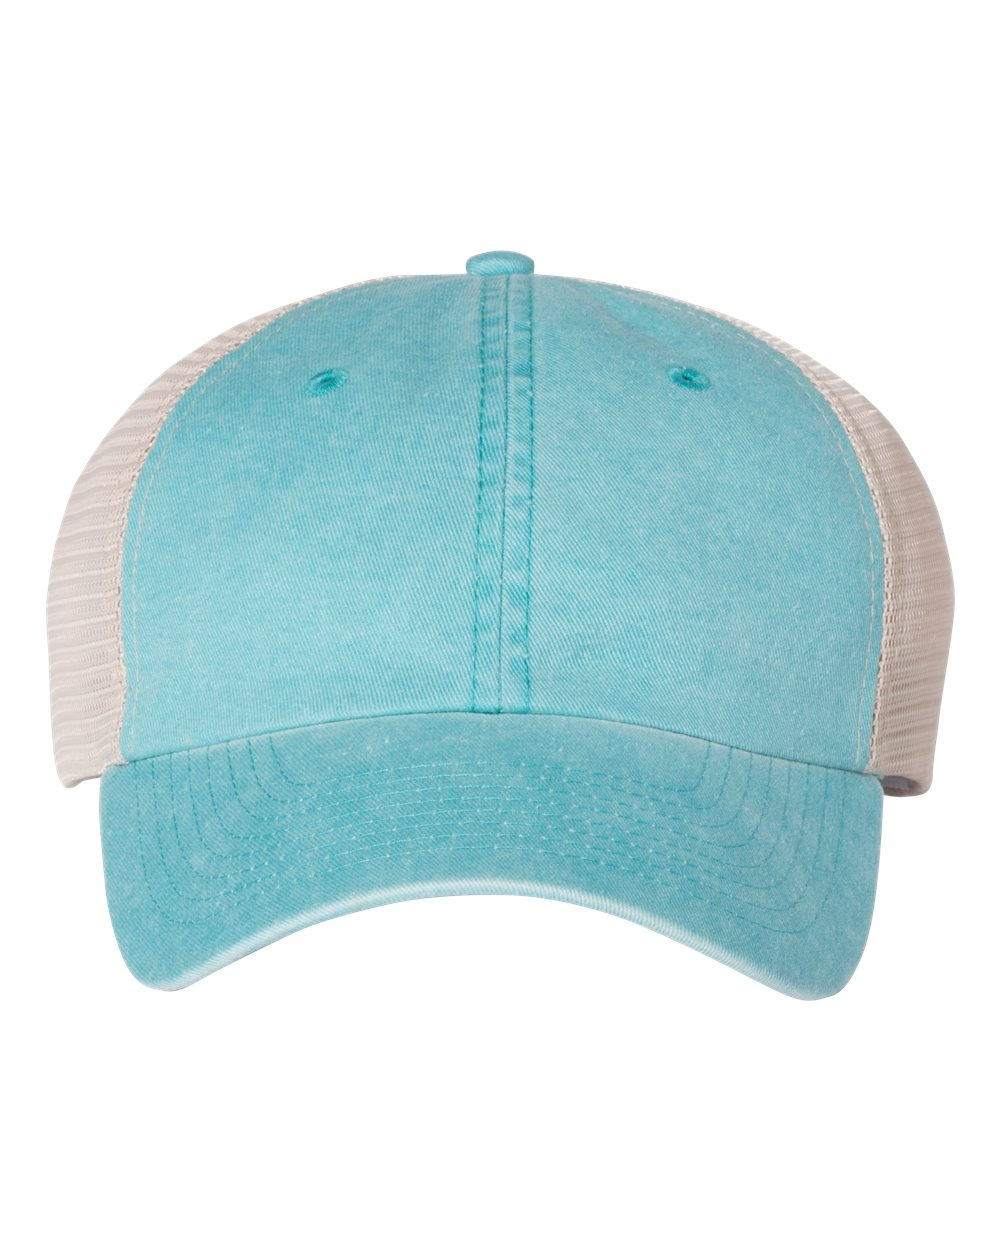 CUSTOMIXED Relaxed Trucker